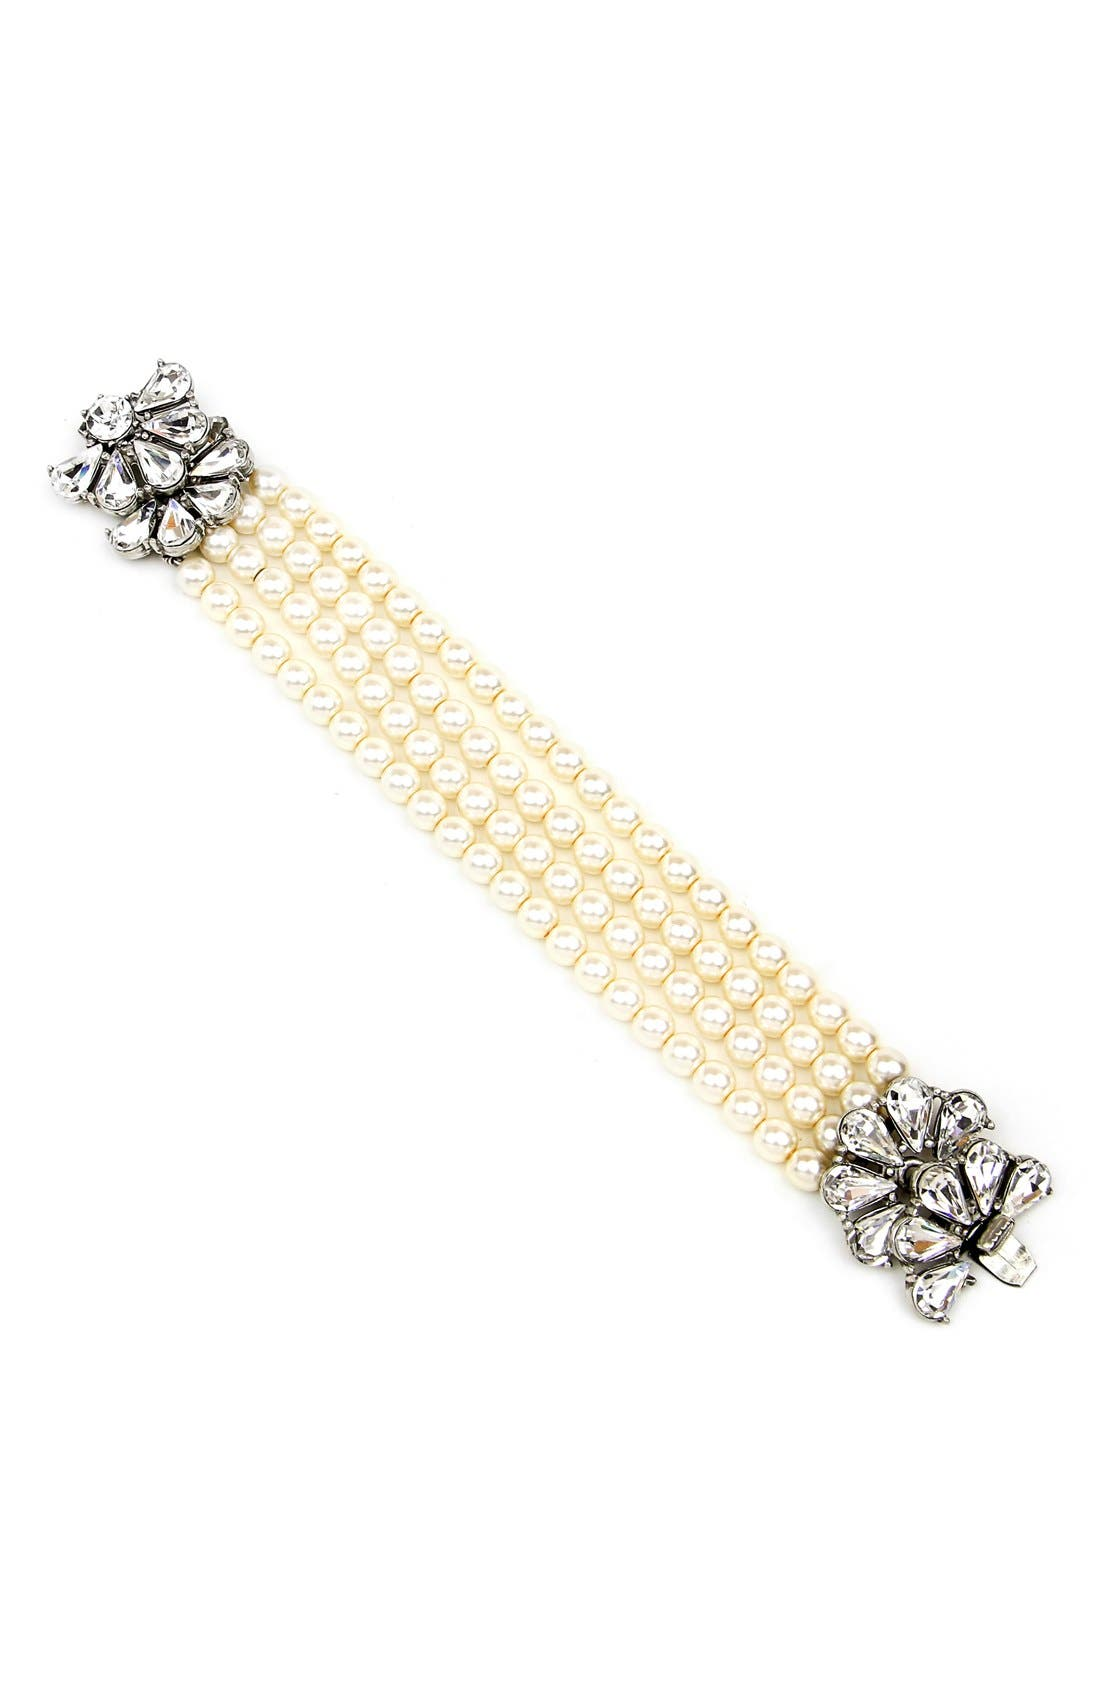 Crystal & Faux Pearl Strand Bracelet,                         Main,                         color, Ivory